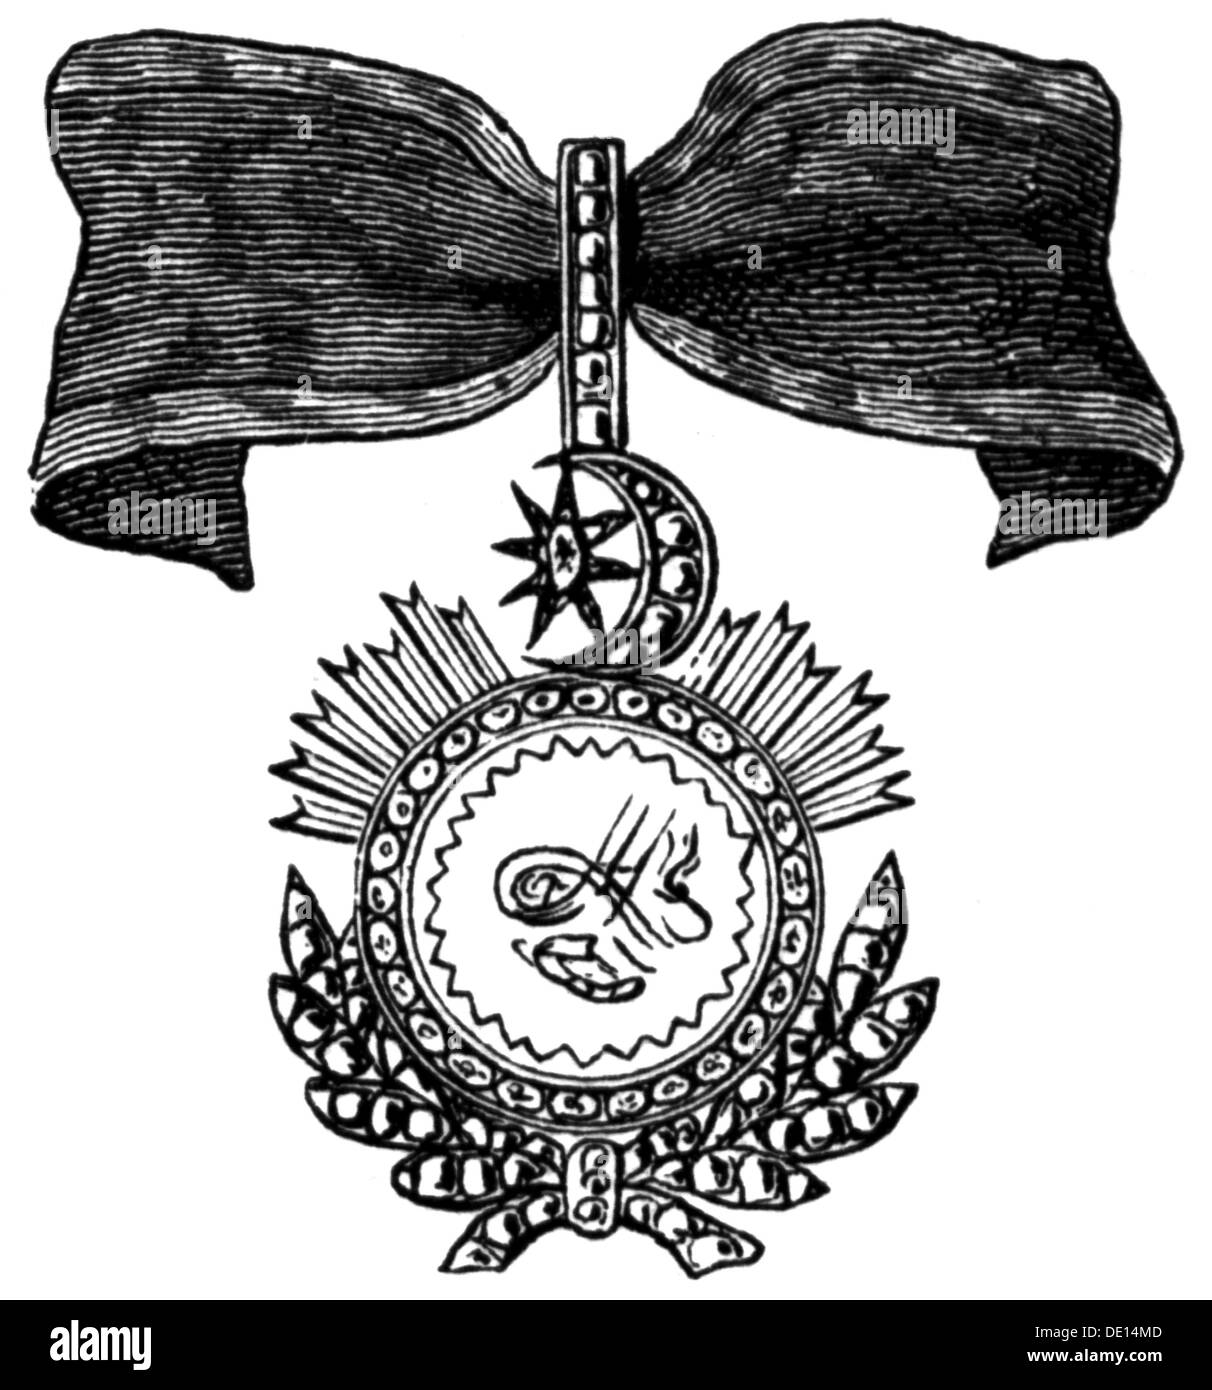 medals and decorations, Turkey, Order of Glory (Nisan-i Iftihar), founded 19.8.1831 by Sultan Mahmud II, badge, version for foreigners, wood engraving, 2nd half 19th century, OM, orders of merit, member of the Order of Merit, Officer of the Order of the British Empire, OBE, ribbon, ribbons, Ottoman Empire, version, versions, foreigner, historic, historical, Additional-Rights-Clearences-NA - Stock Image